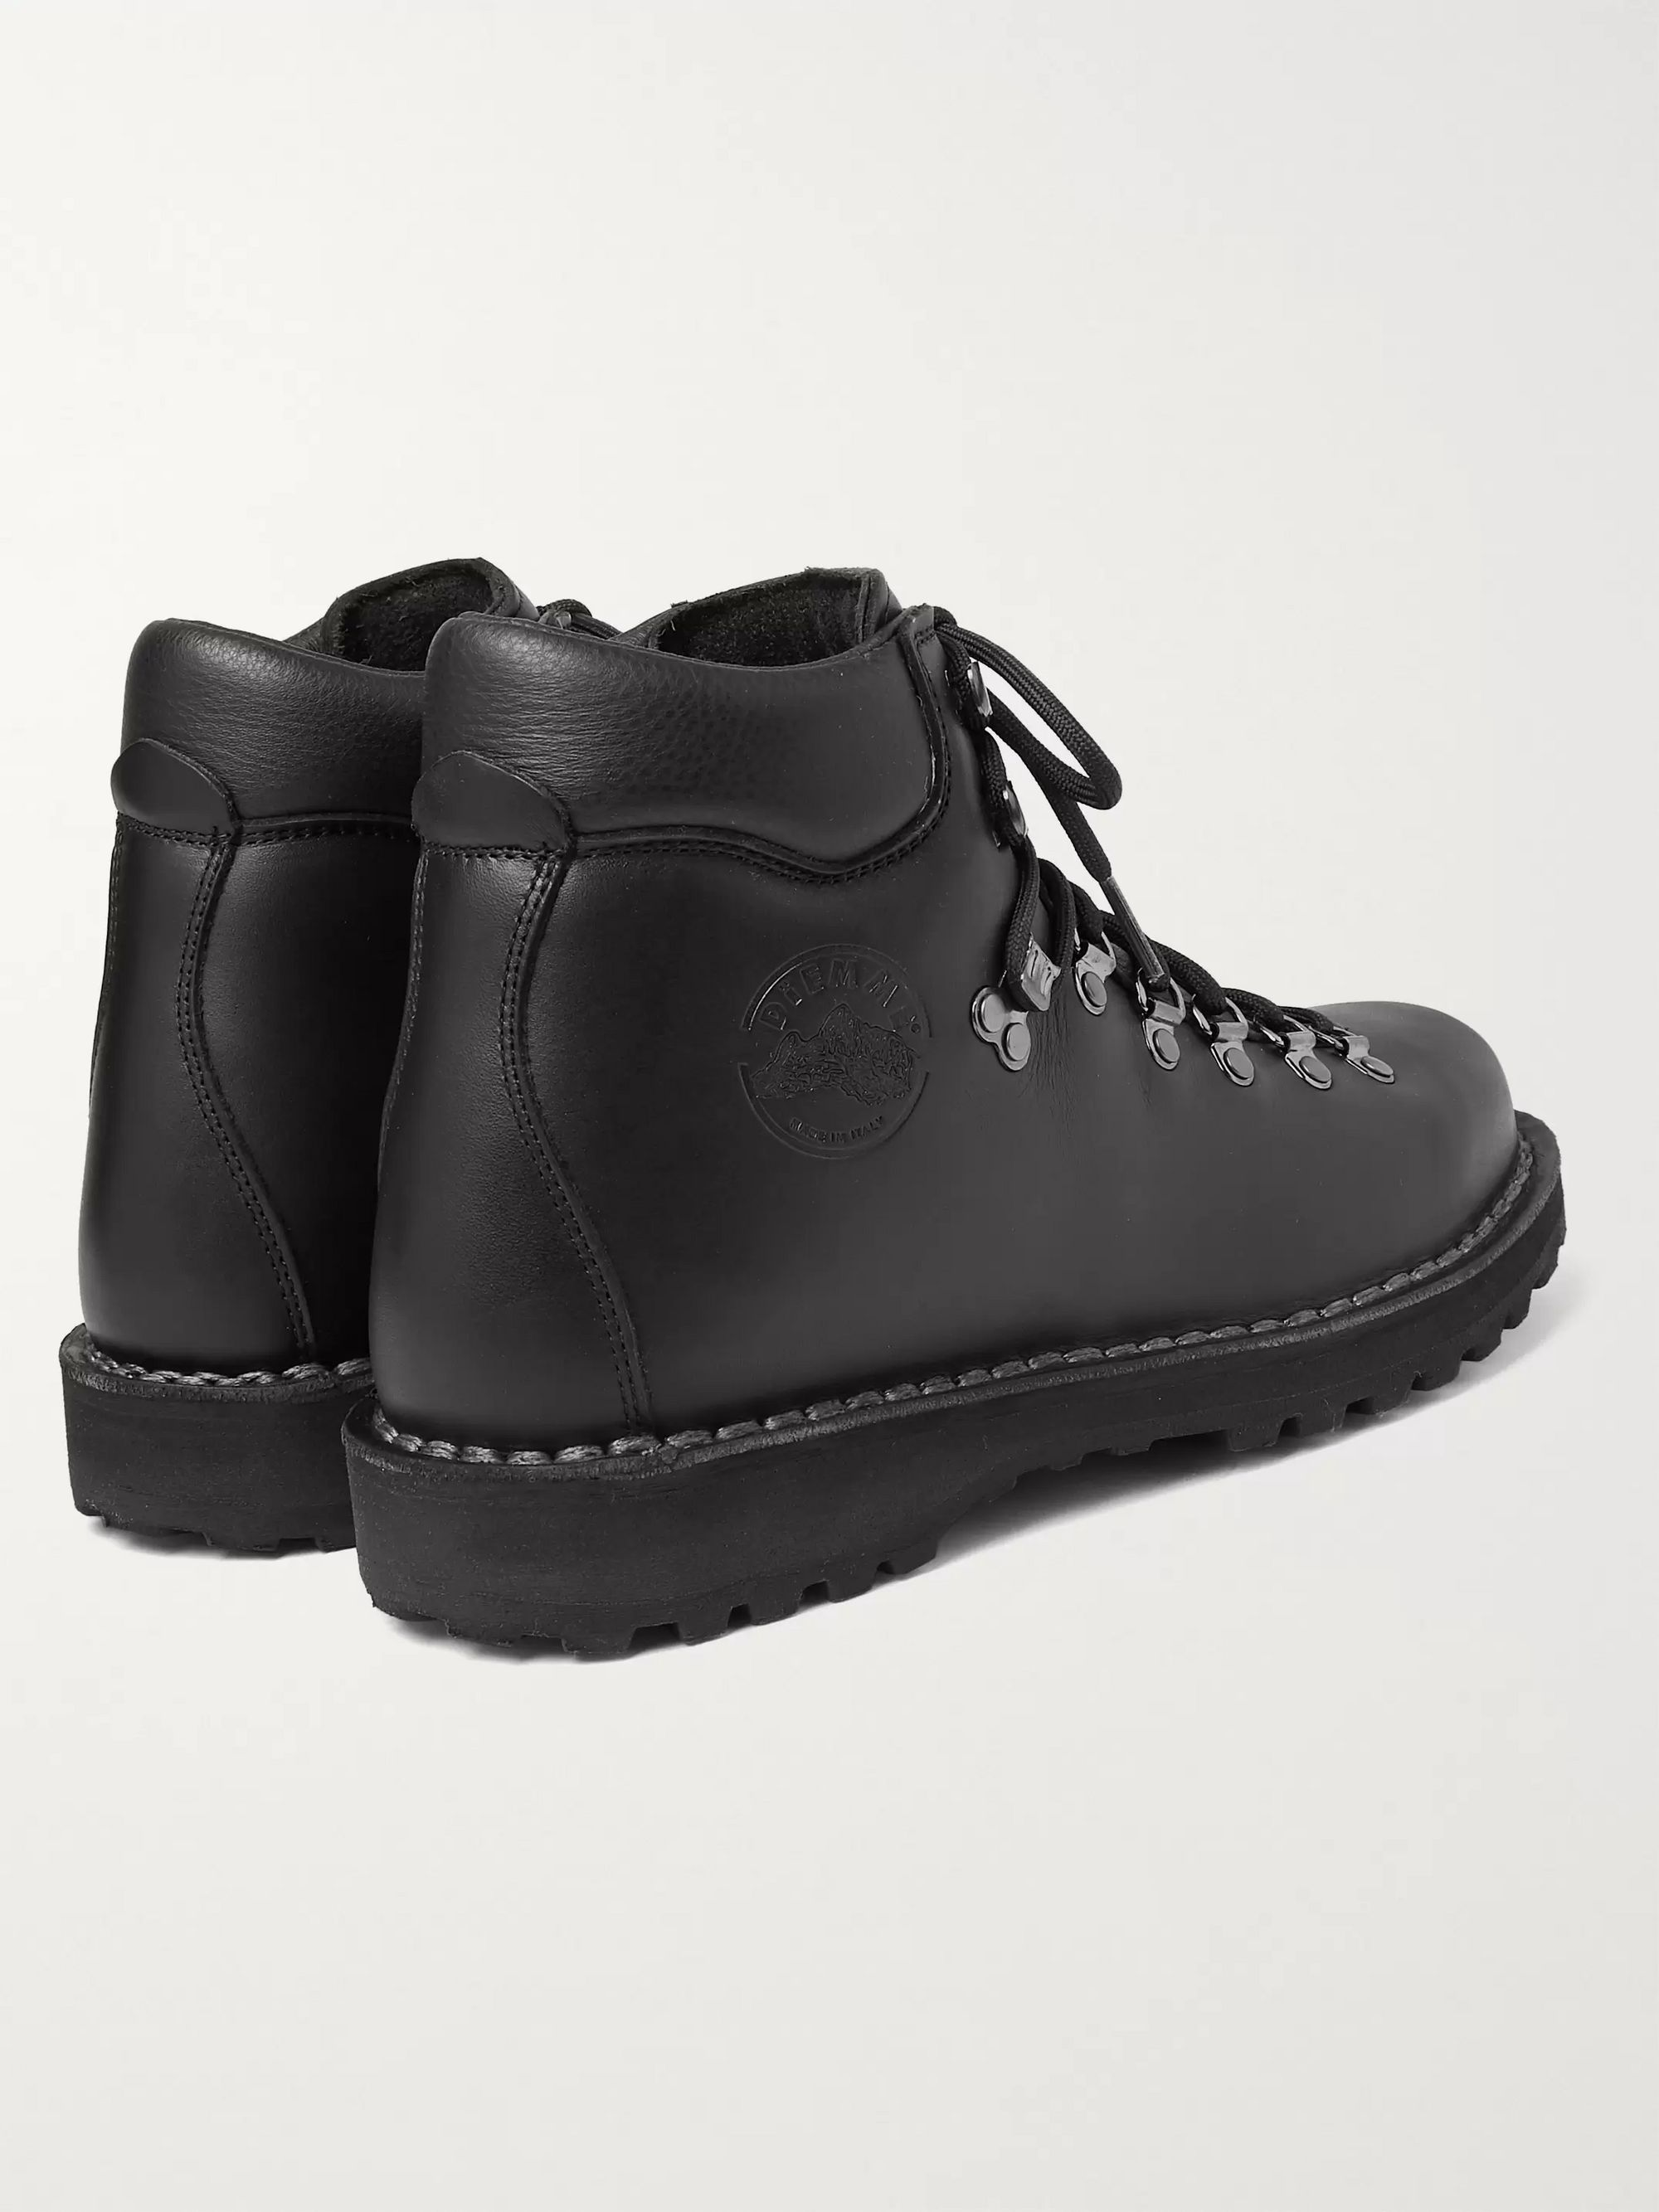 Diemme Roccia Vet Shearling-Lined Leather Boots